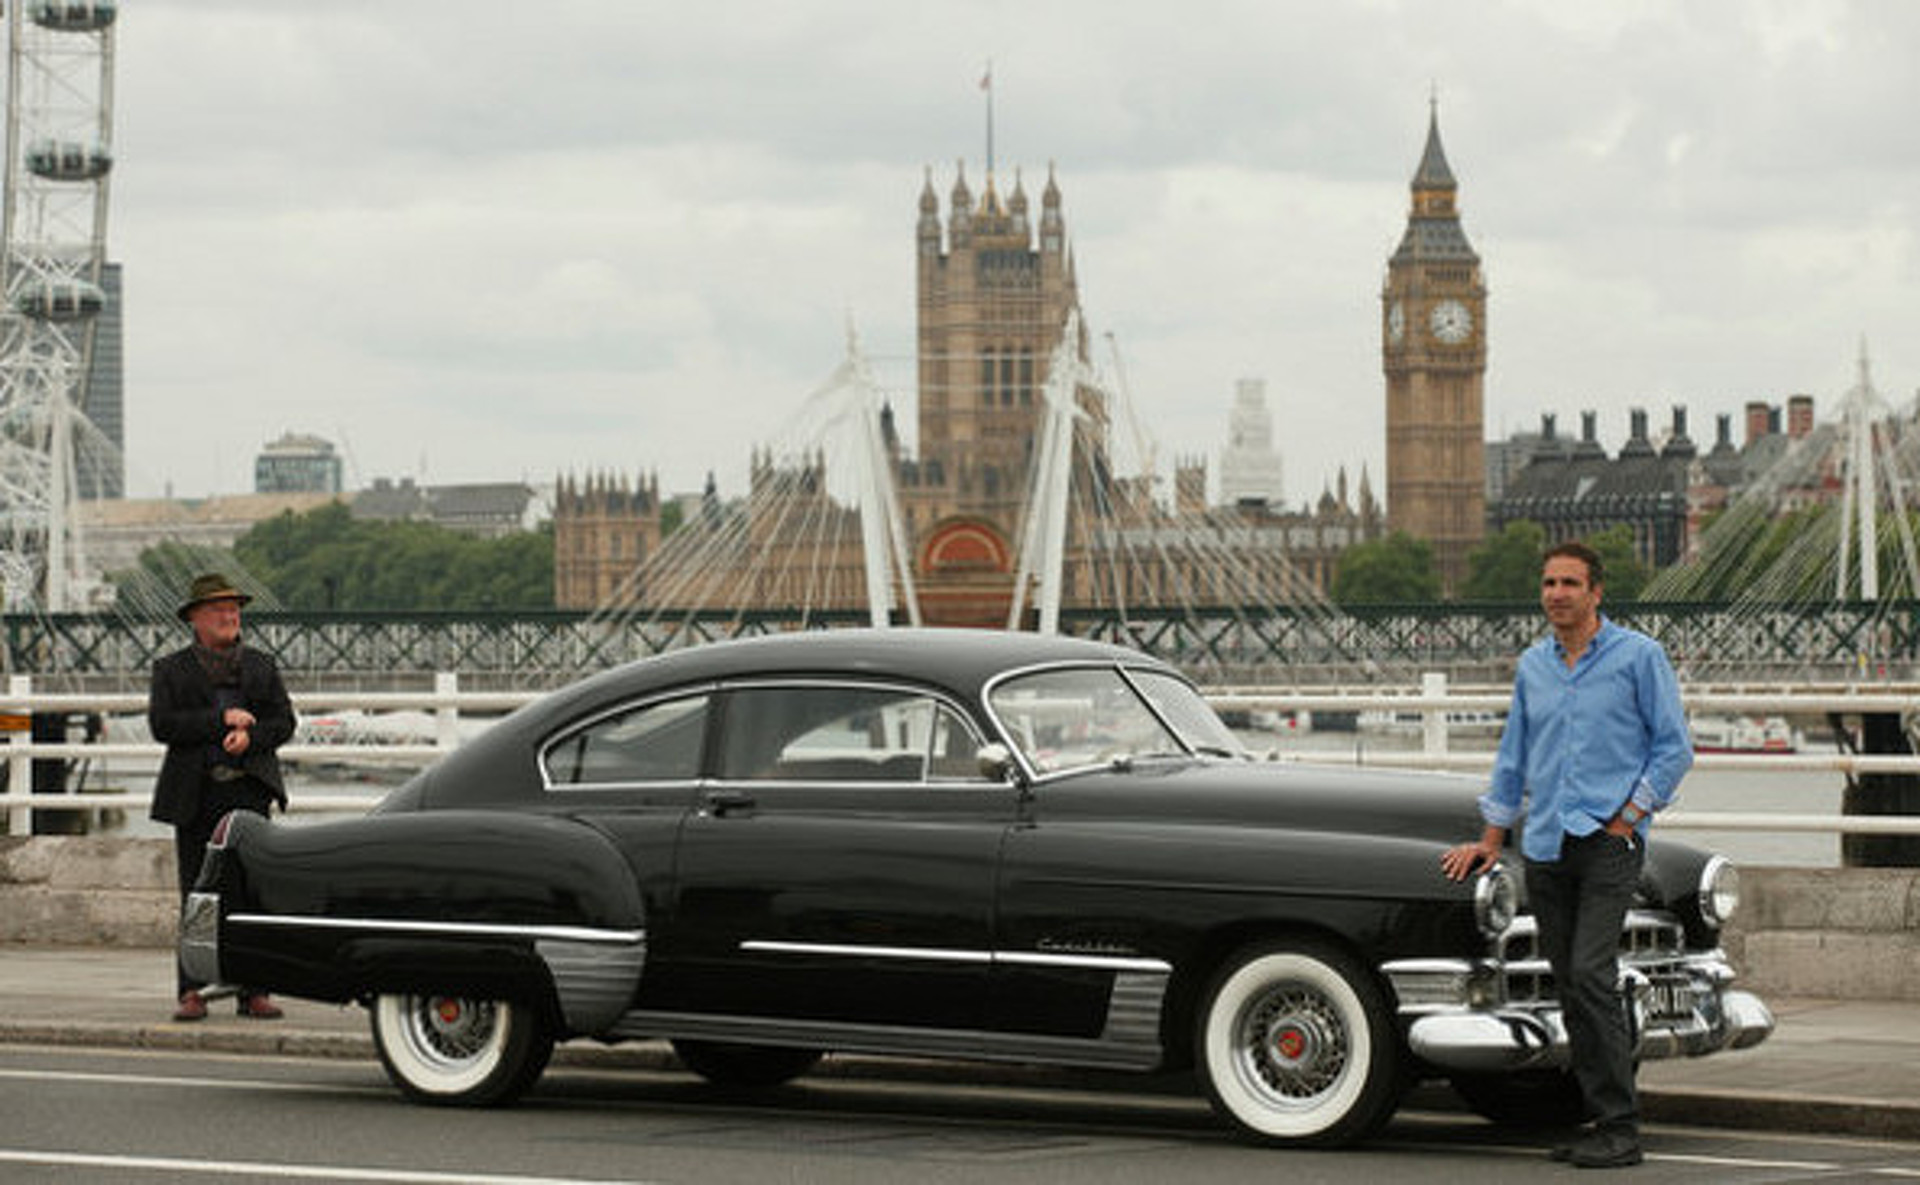 An American Dragster in London